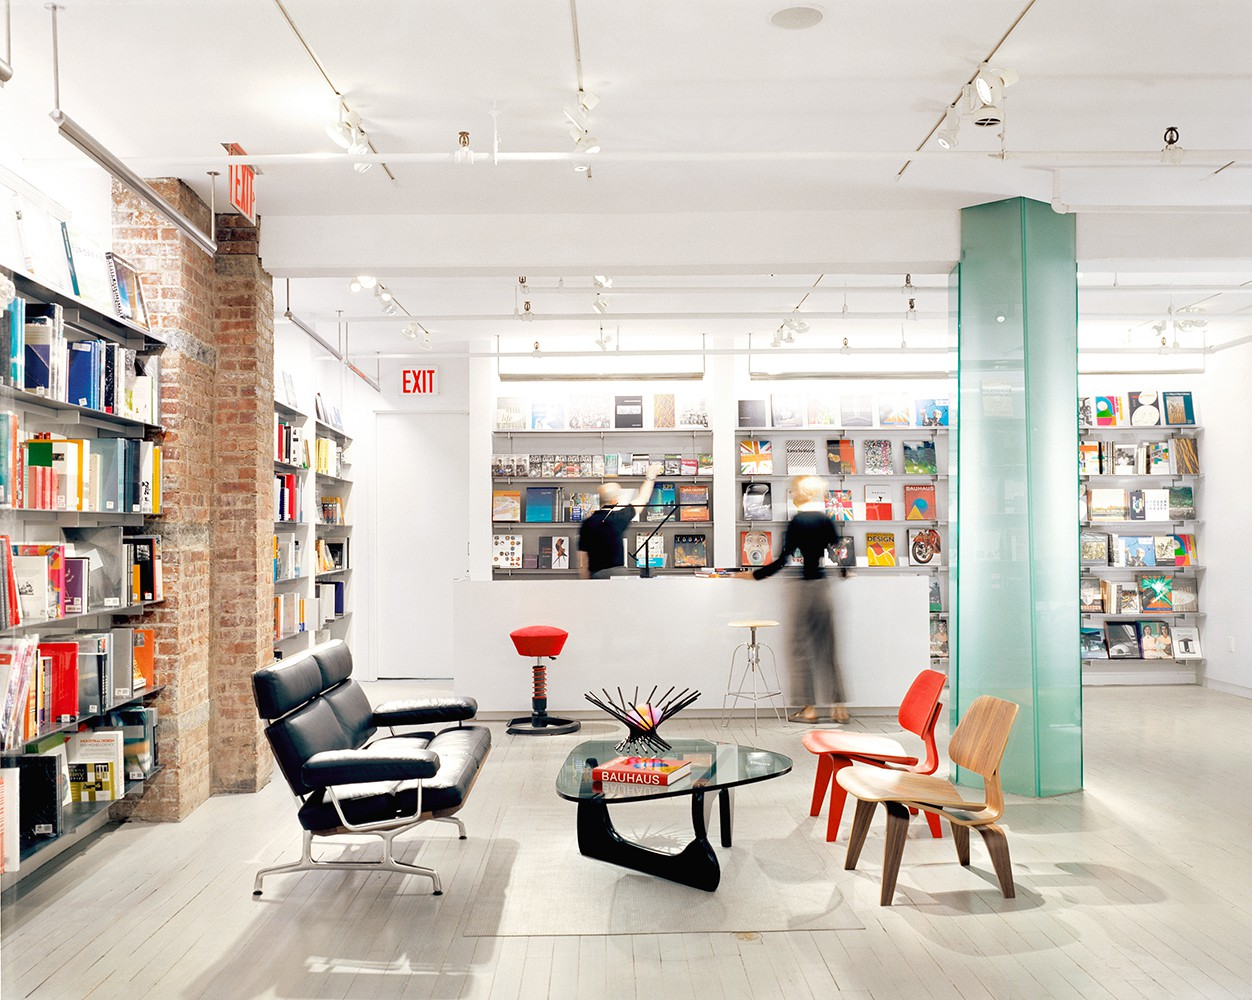 New York City Guide for Designers new york city guide The Ultimate New York City Guide Designers Should Follow new york city guide for designers moma design shop interior